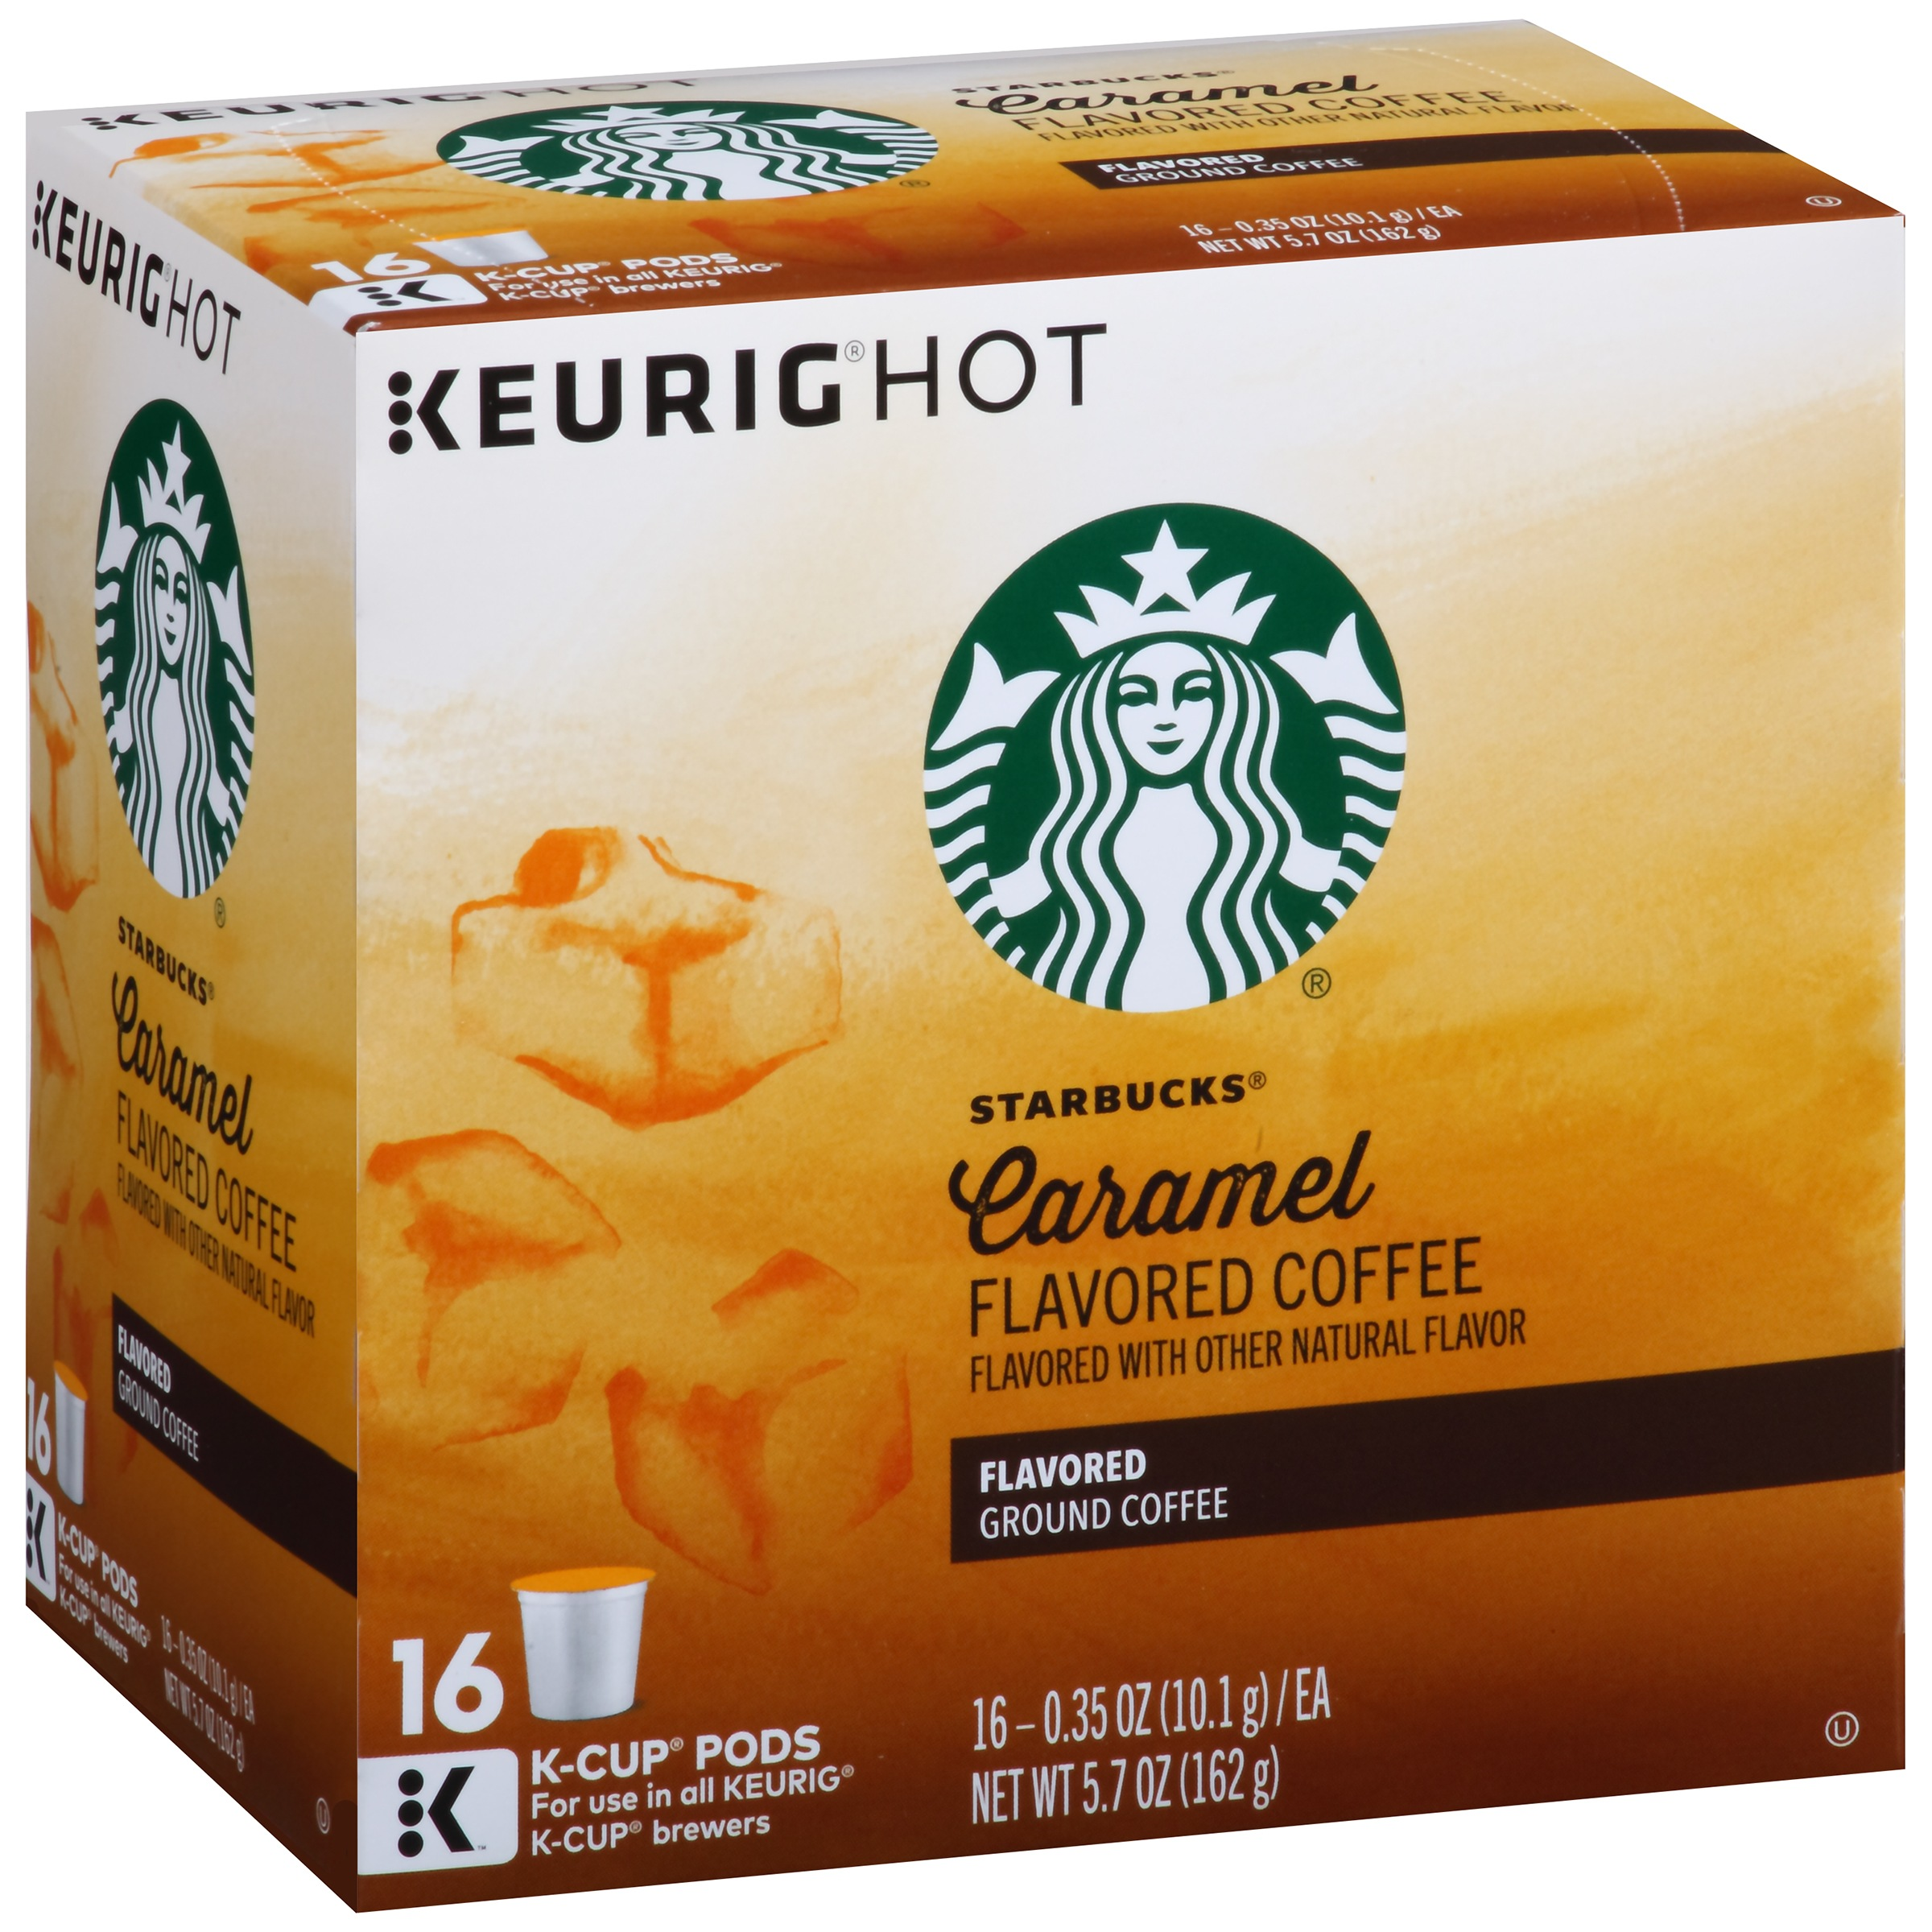 Starbucks Caramel Flavored Coffee K-Cup Pods 16 ct Box by STARBUCKS COFFEE COMPANY